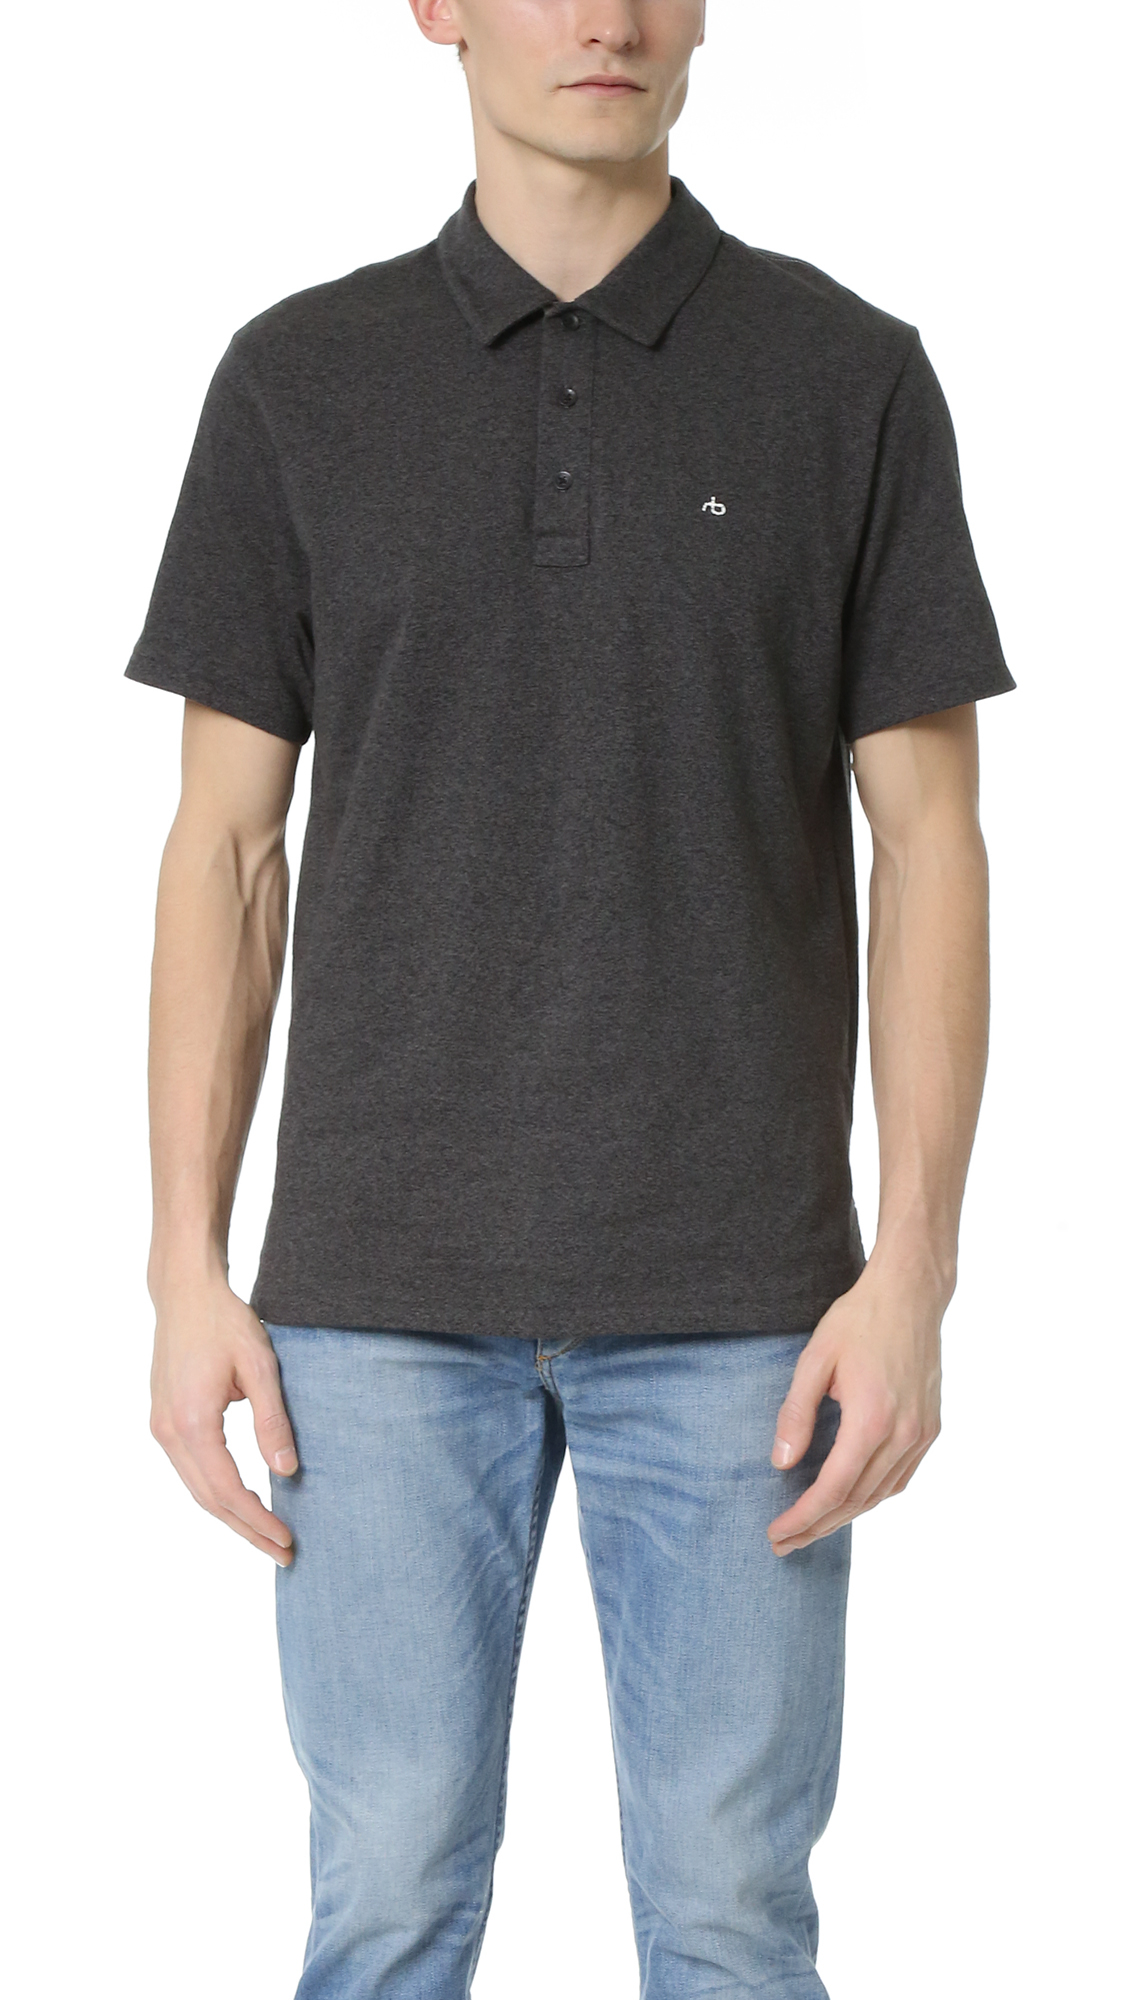 Rag bone standard issue polo in grey for men lyst for Rag and bone mens shirts sale